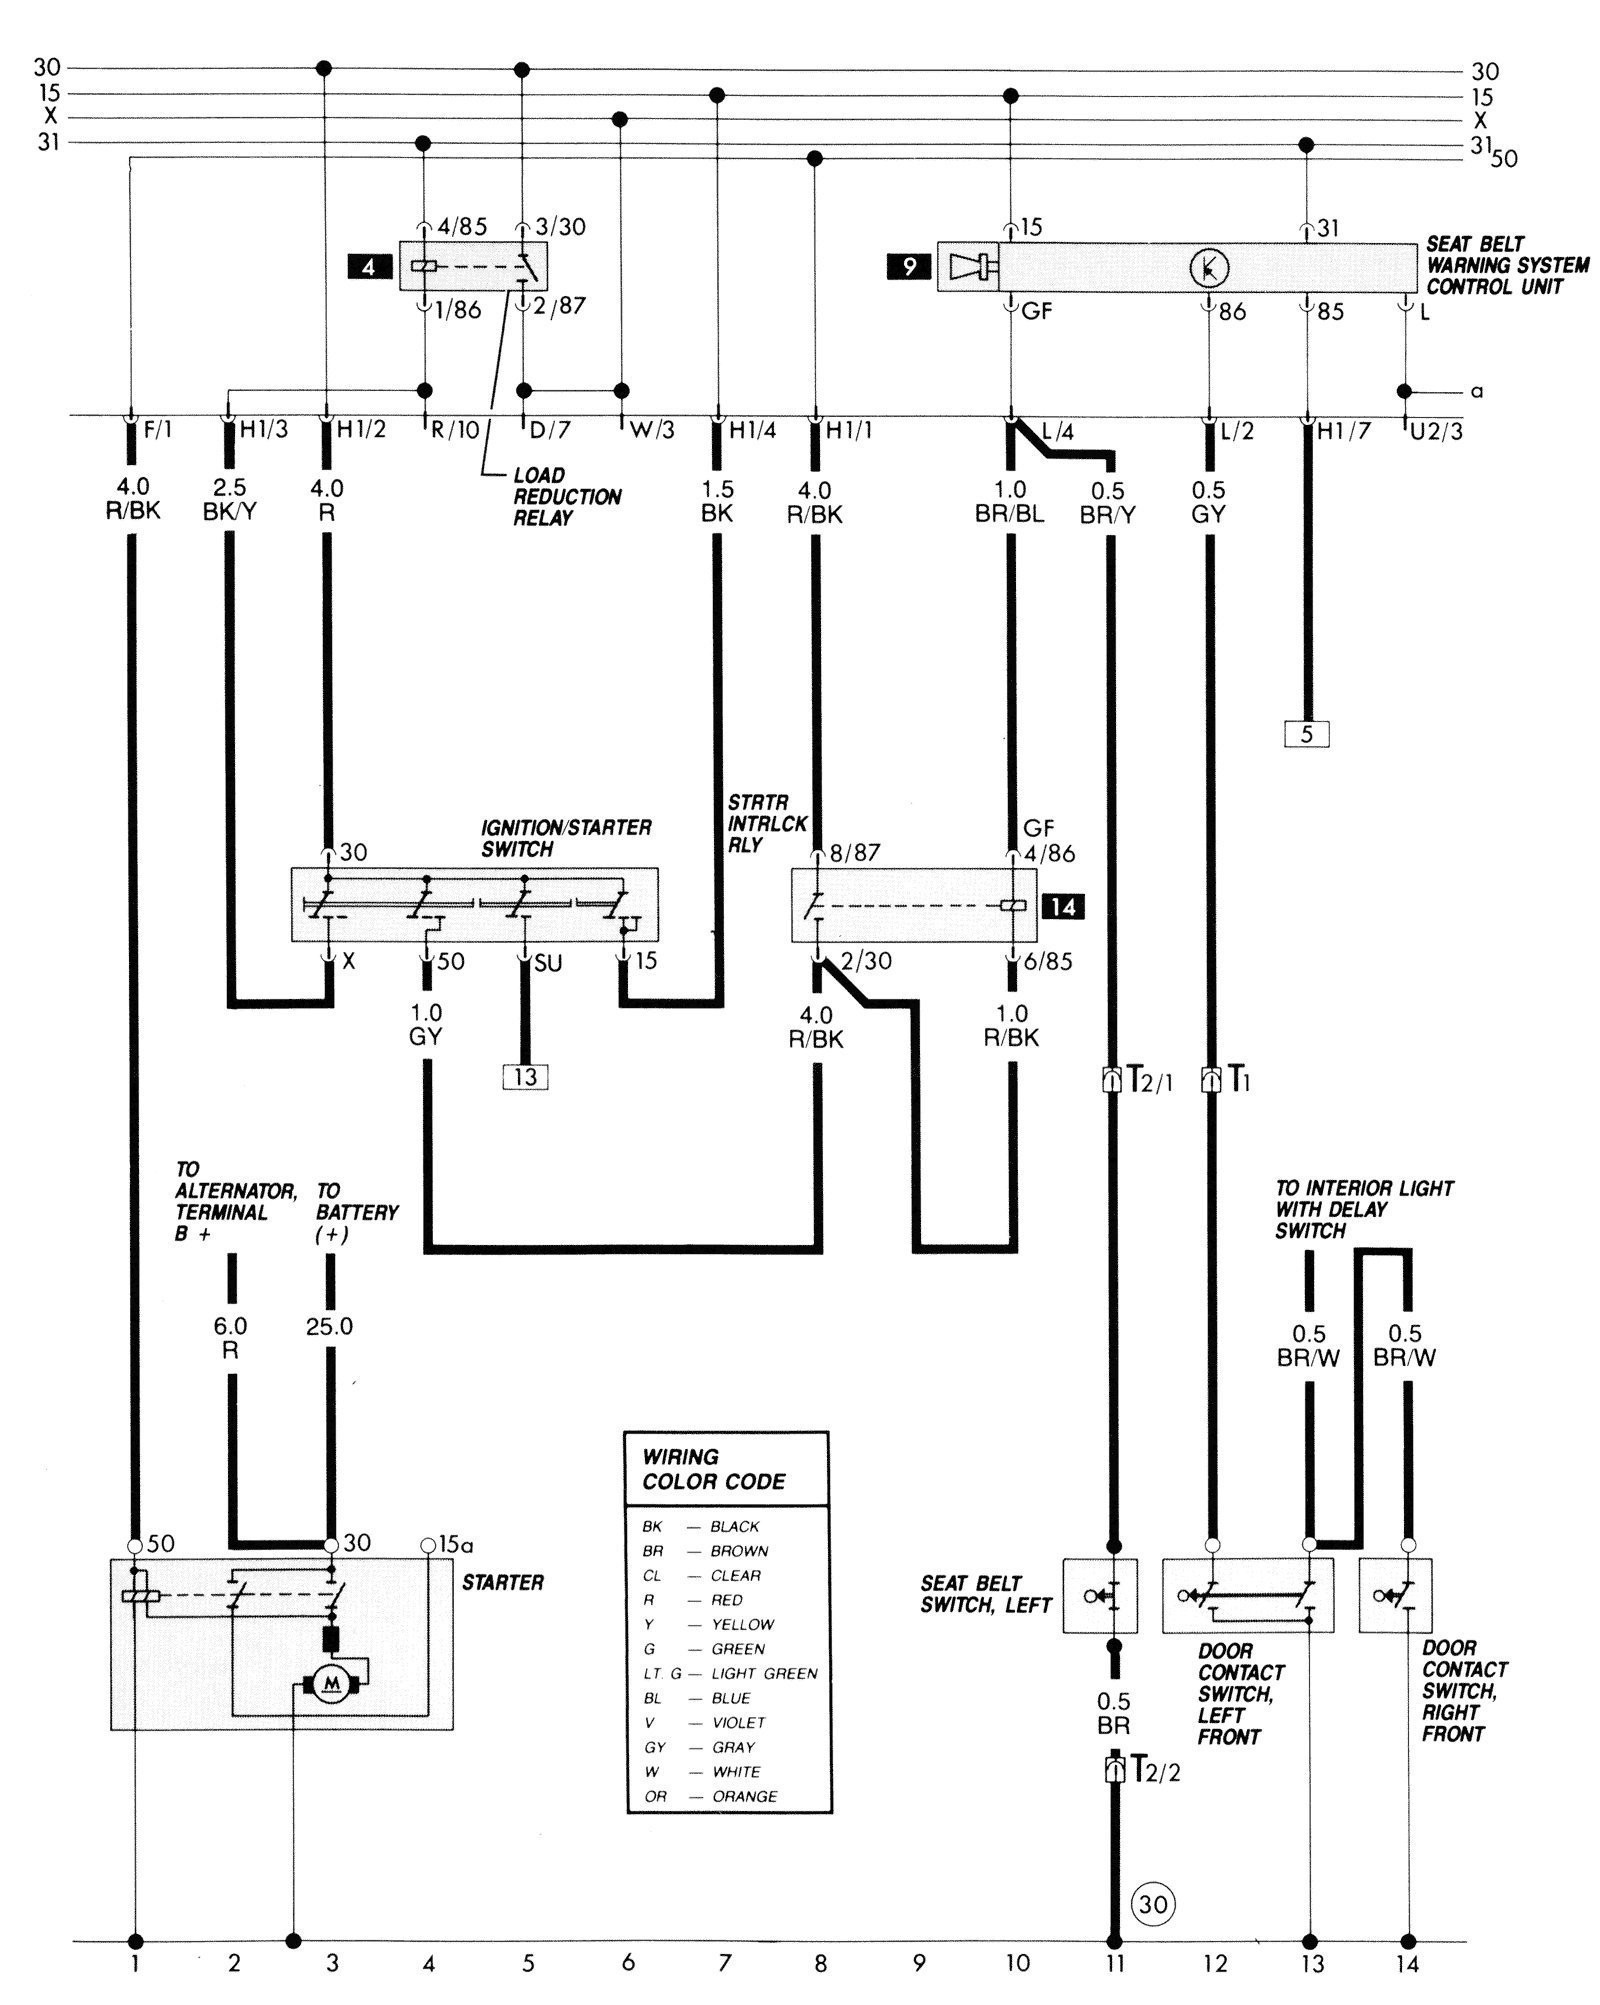 2002 Vw Jetta Tdi Engine Diagram Vr6 Alternator Wiring Diagram & Audi Vw  Engine Bay Fuses